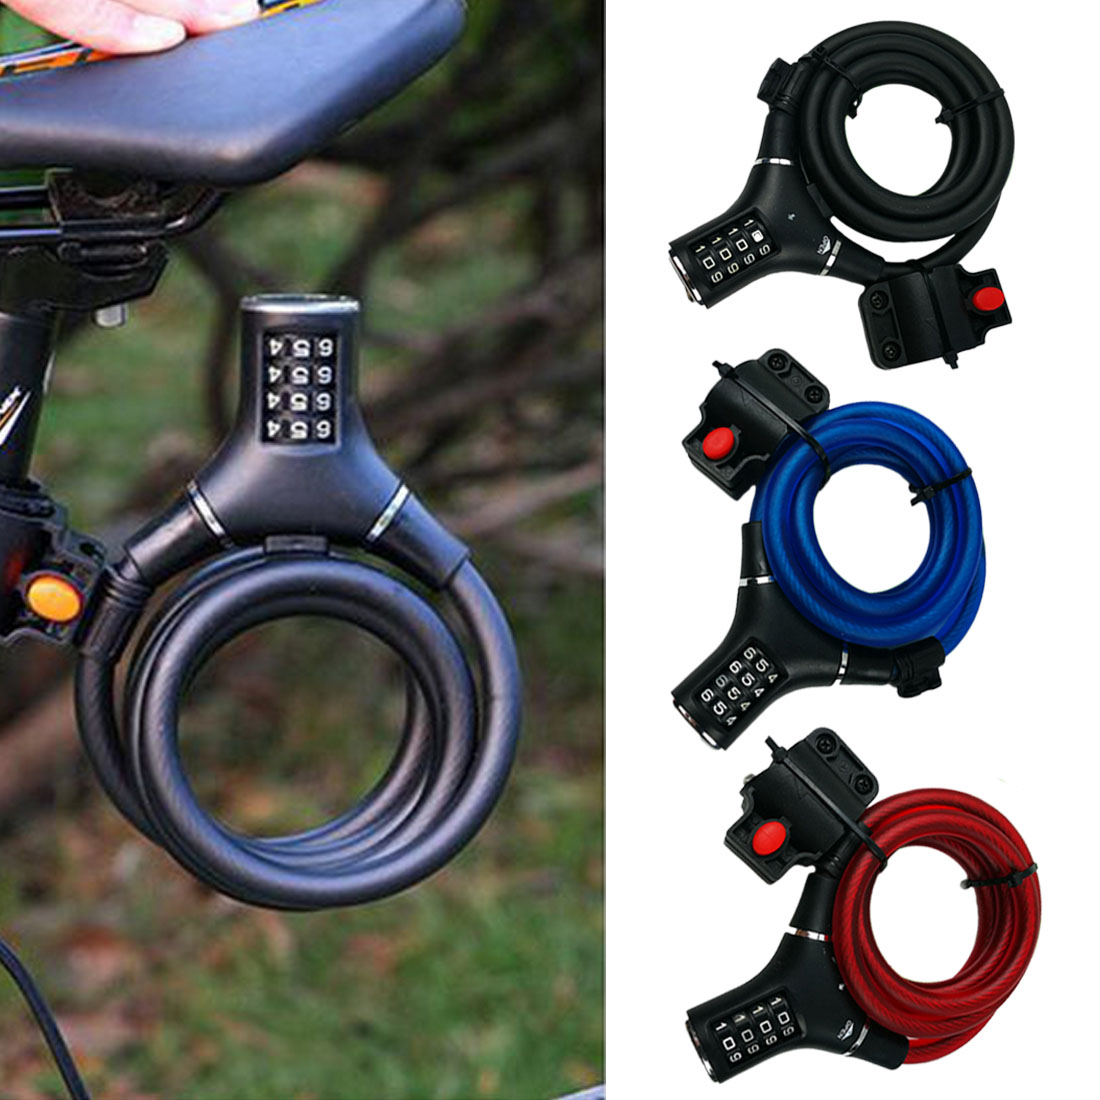 Four-digit Password Lock Motorcycle Locks Badminton Racket Lock Bicycle Wire Lock Battery Car Security Anti-theft Steel Cable